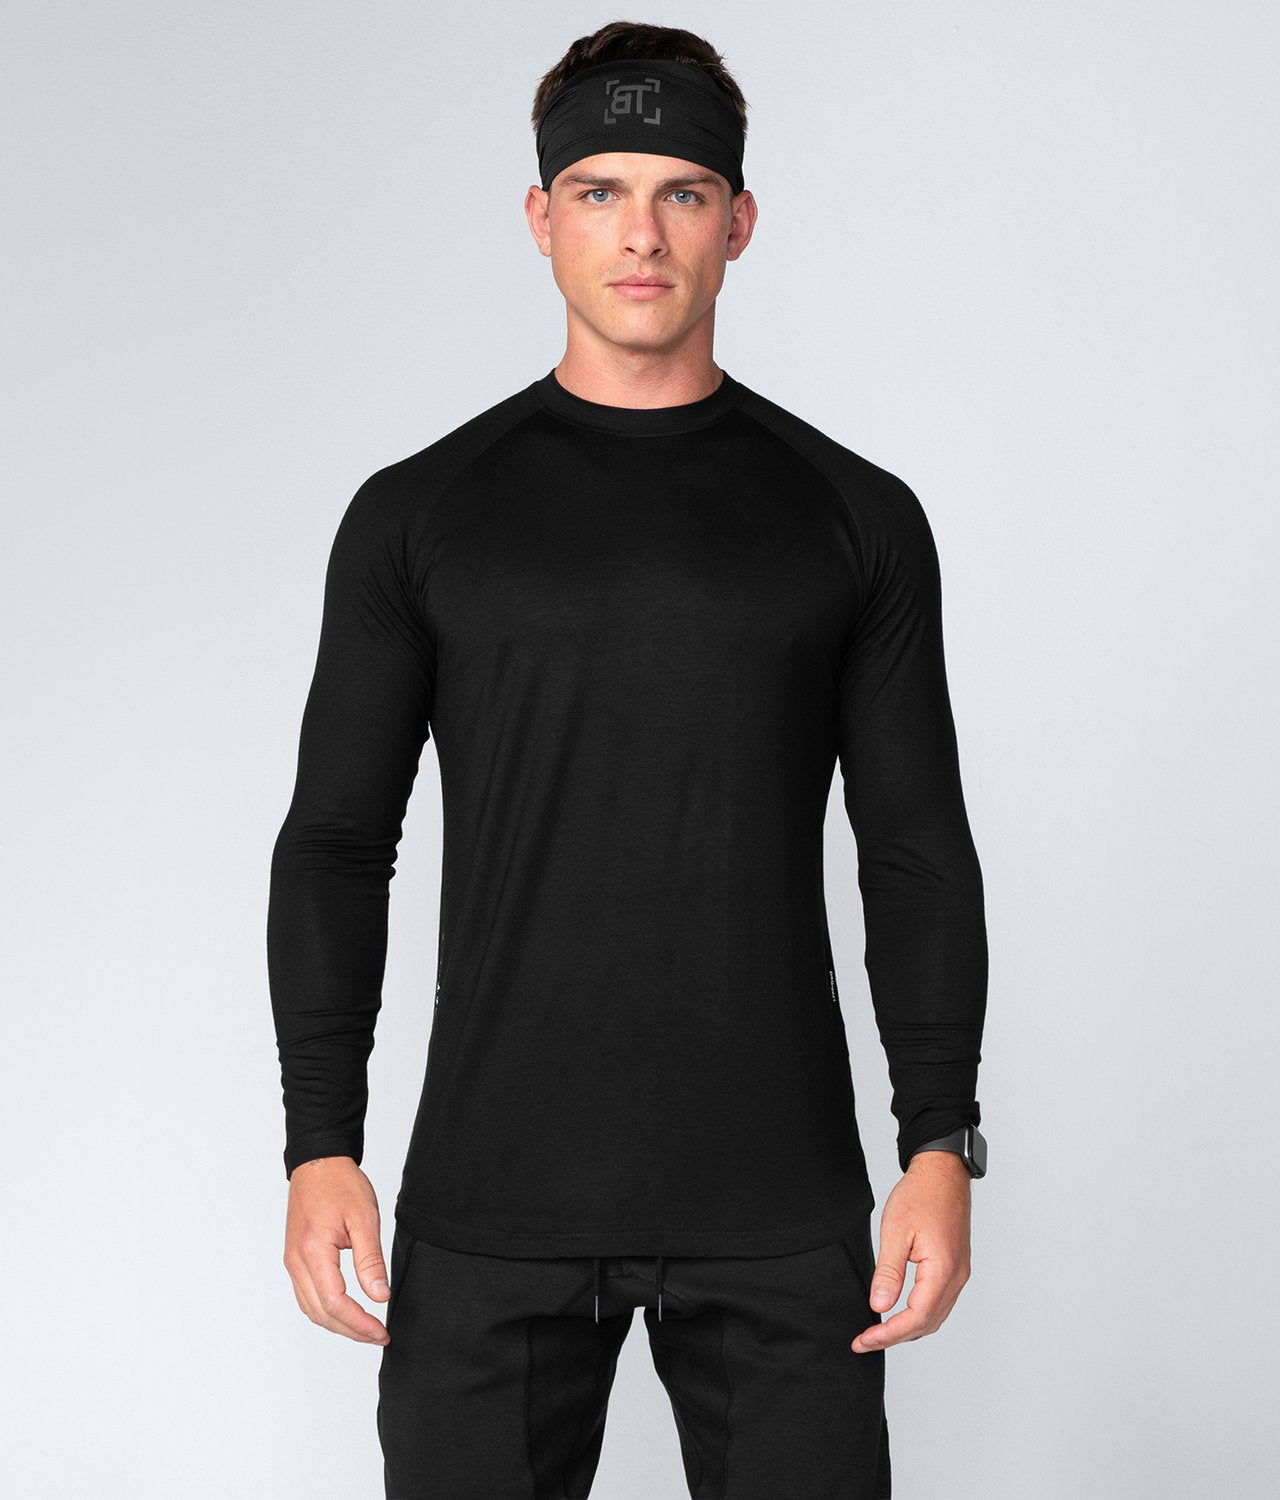 Born Tough United Kingdom Core Fit Extremely Durable Black Long Sleeve Gym Workout Shirt For Men